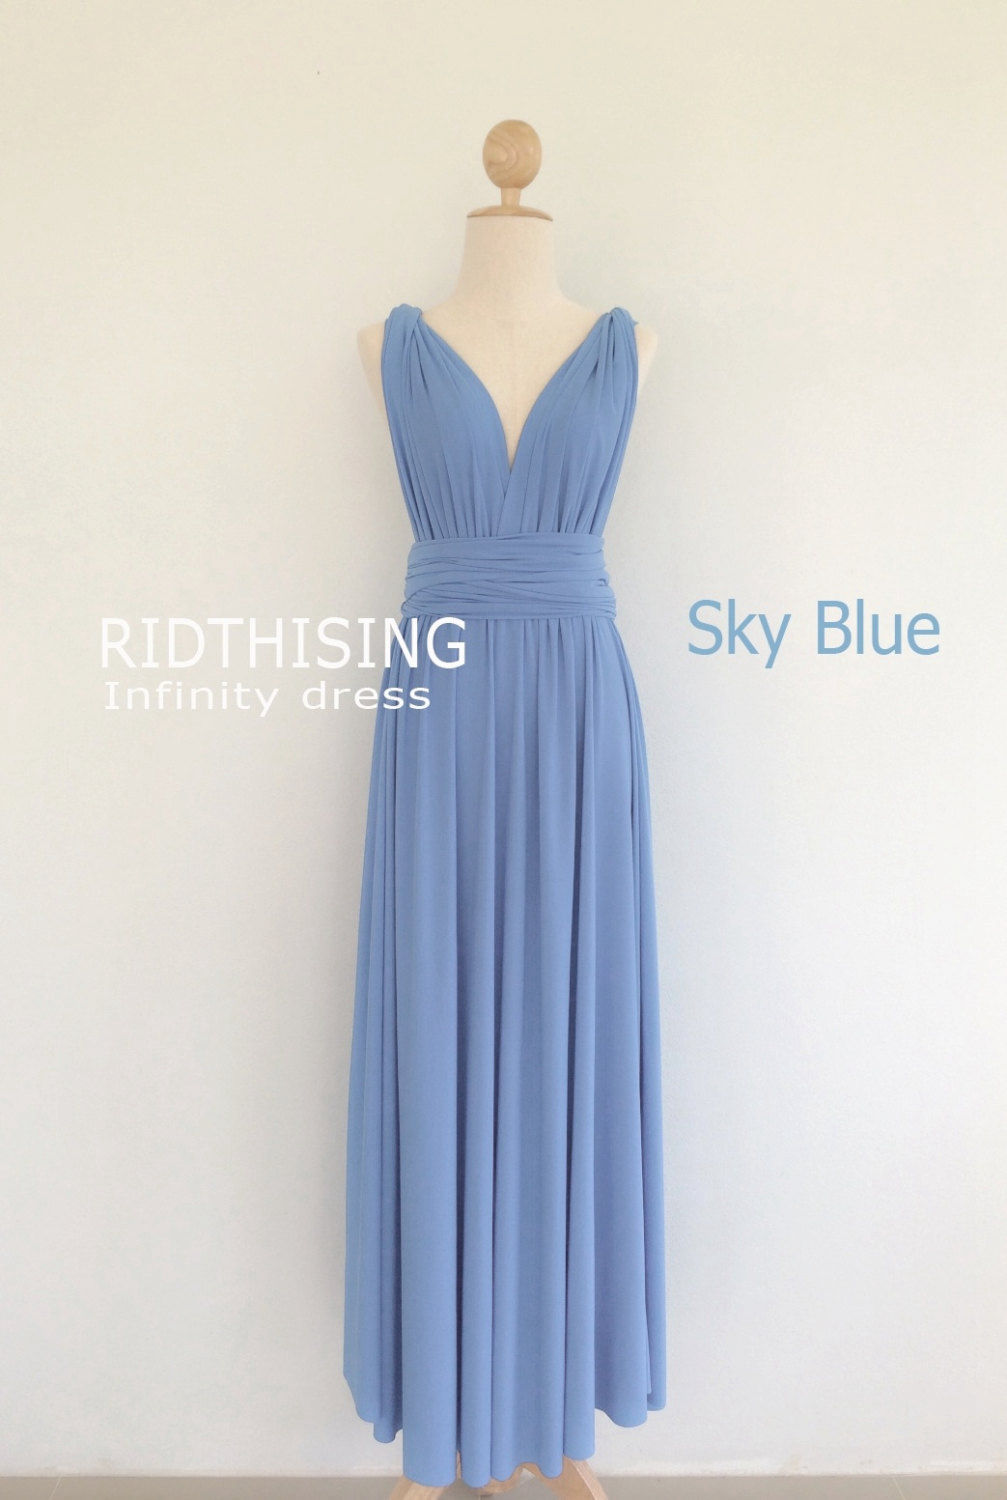 Sky Blue Infinity Dress Floor Length Bridesmaid Dress